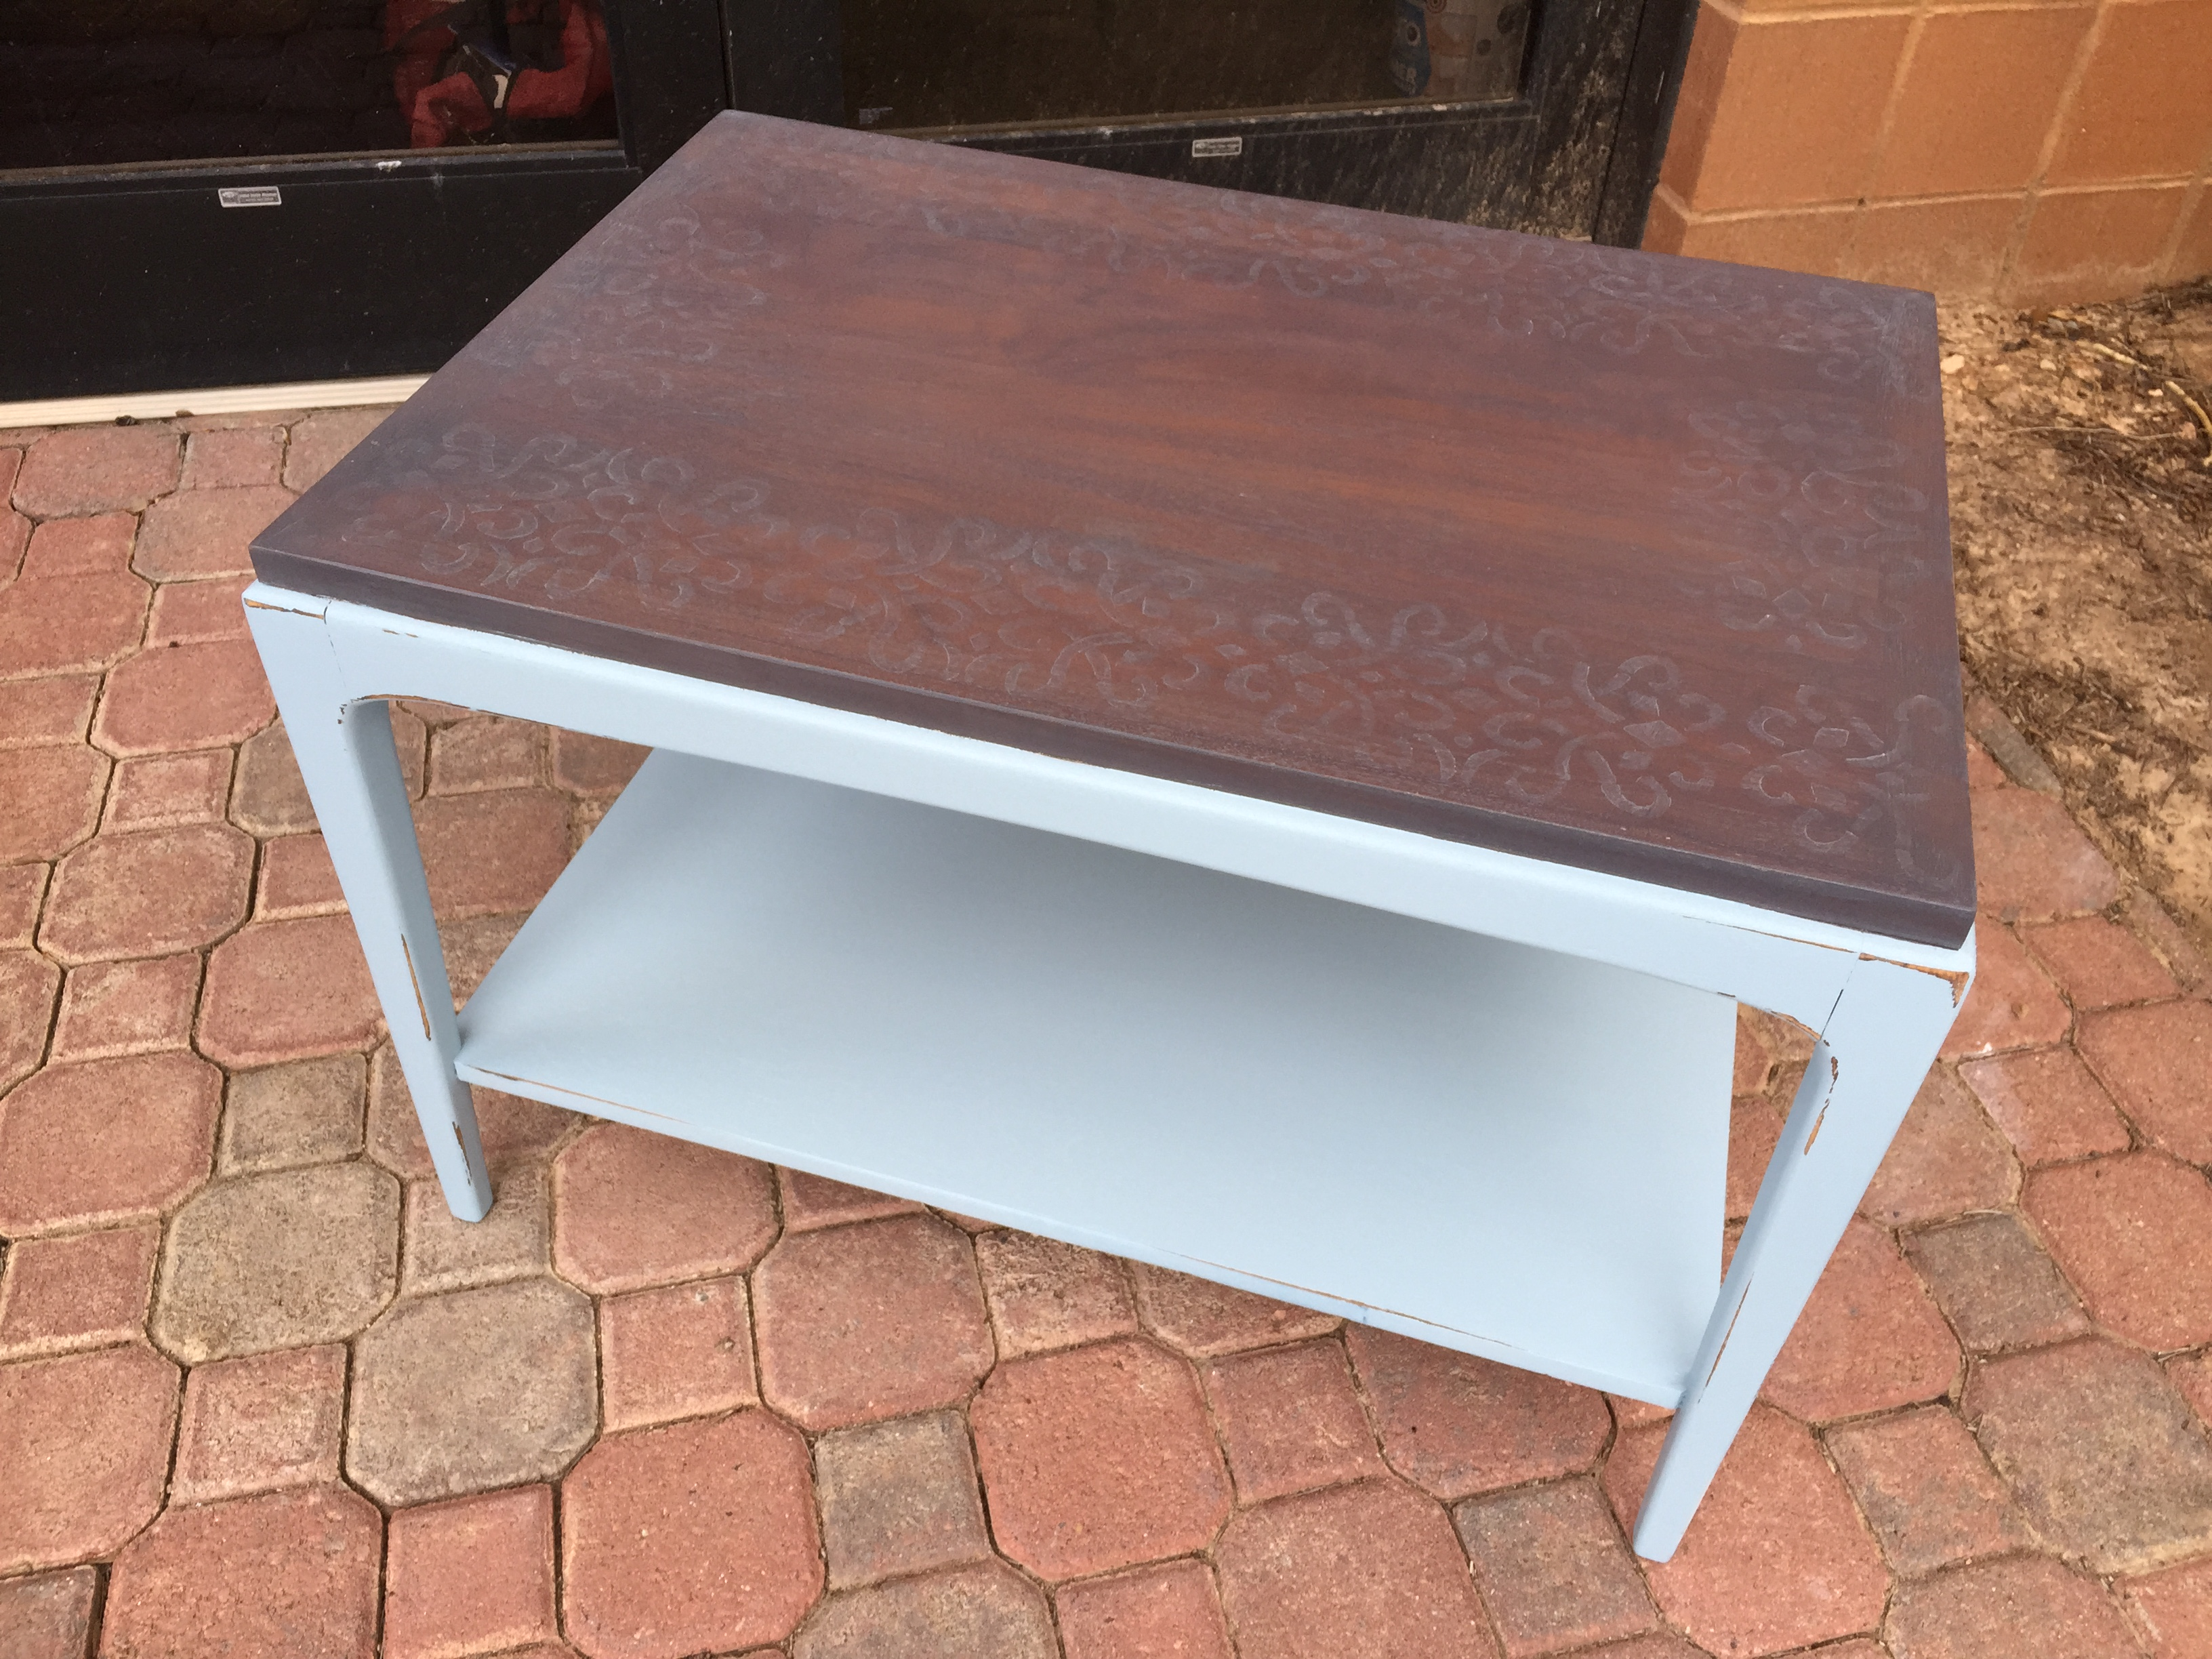 I Was A Bit Saddened To Find That Someone Had Painted This Elegant Little  Vintage Mid Century Modern (MCM) End Table. Which, Coming From Someone Who  Paints ...